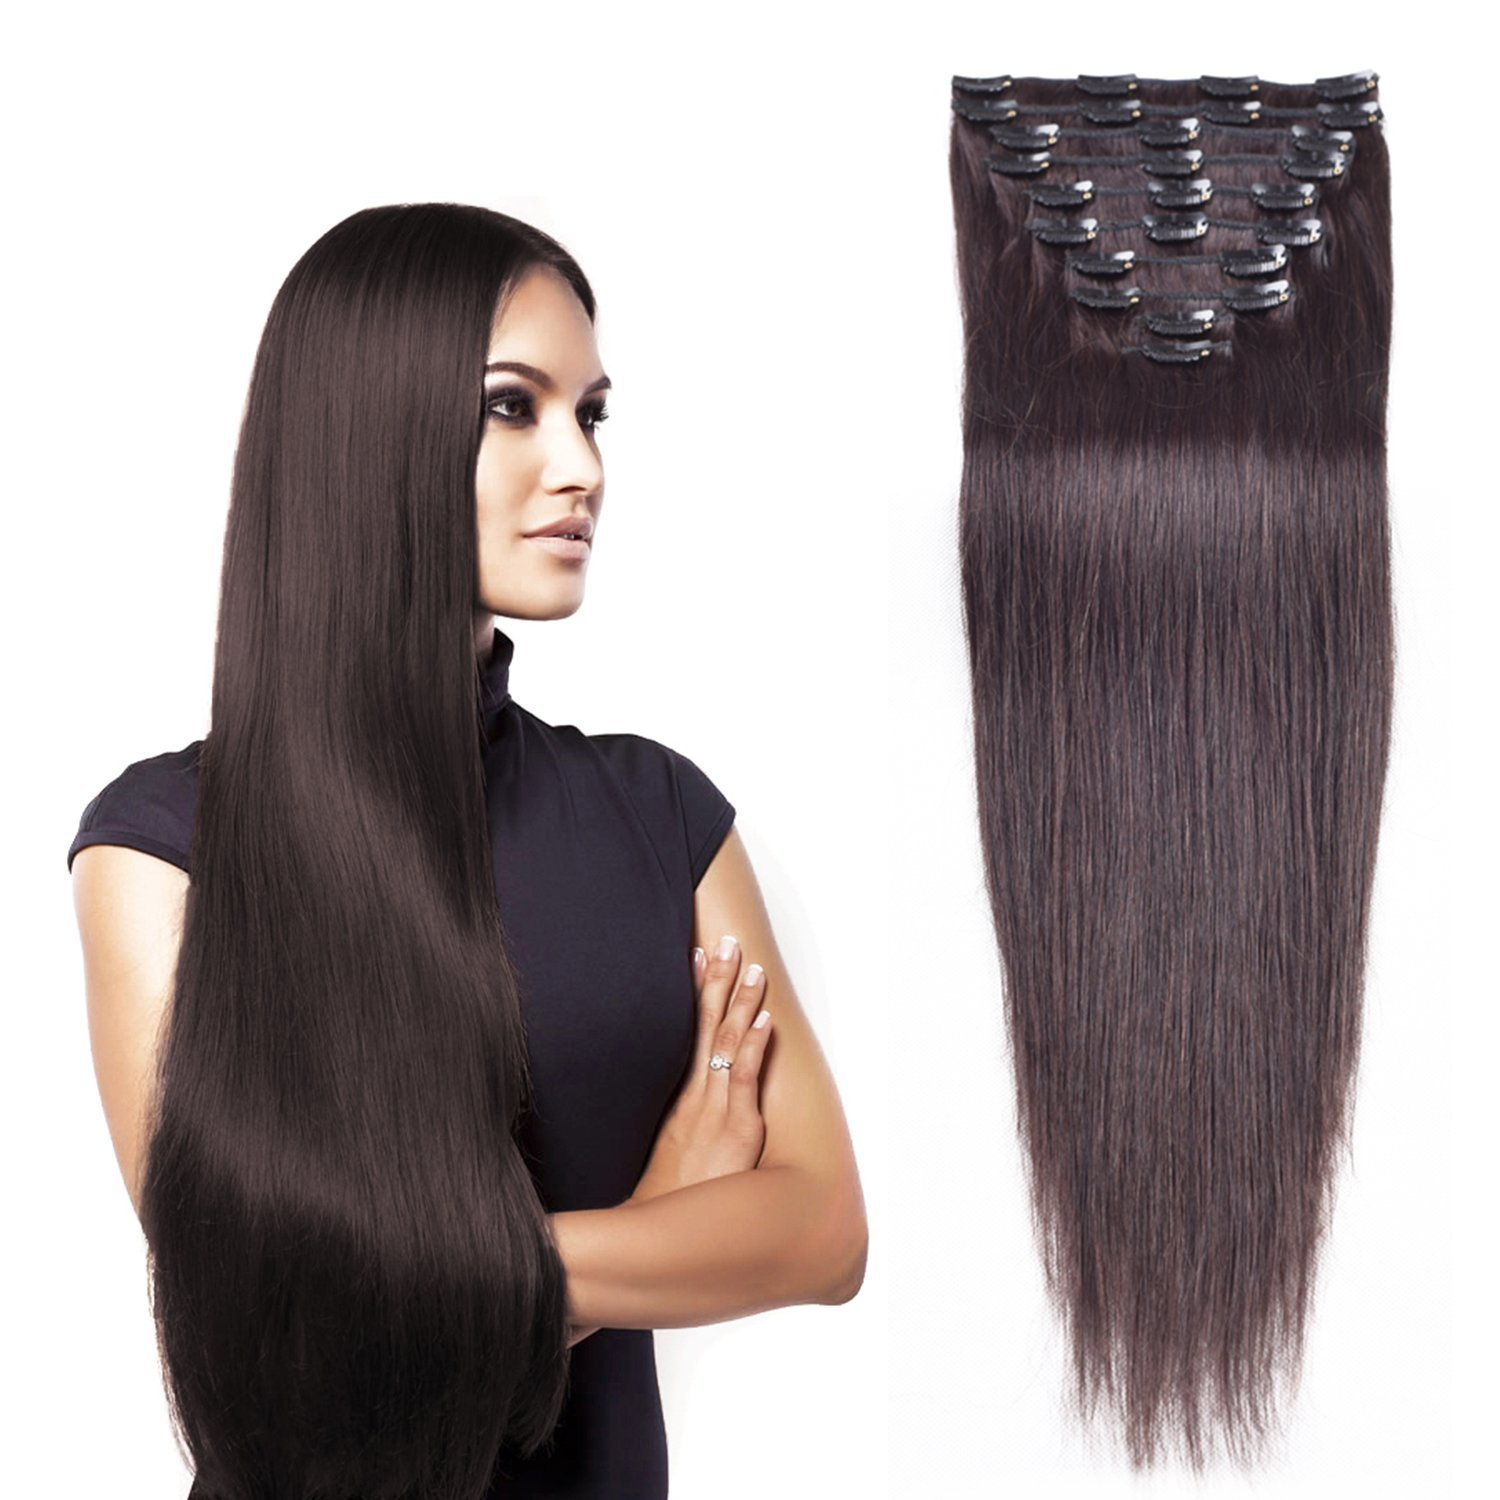 Buy 18inch45cm 10pcs 70g Remy Straight Clip In Human Hair